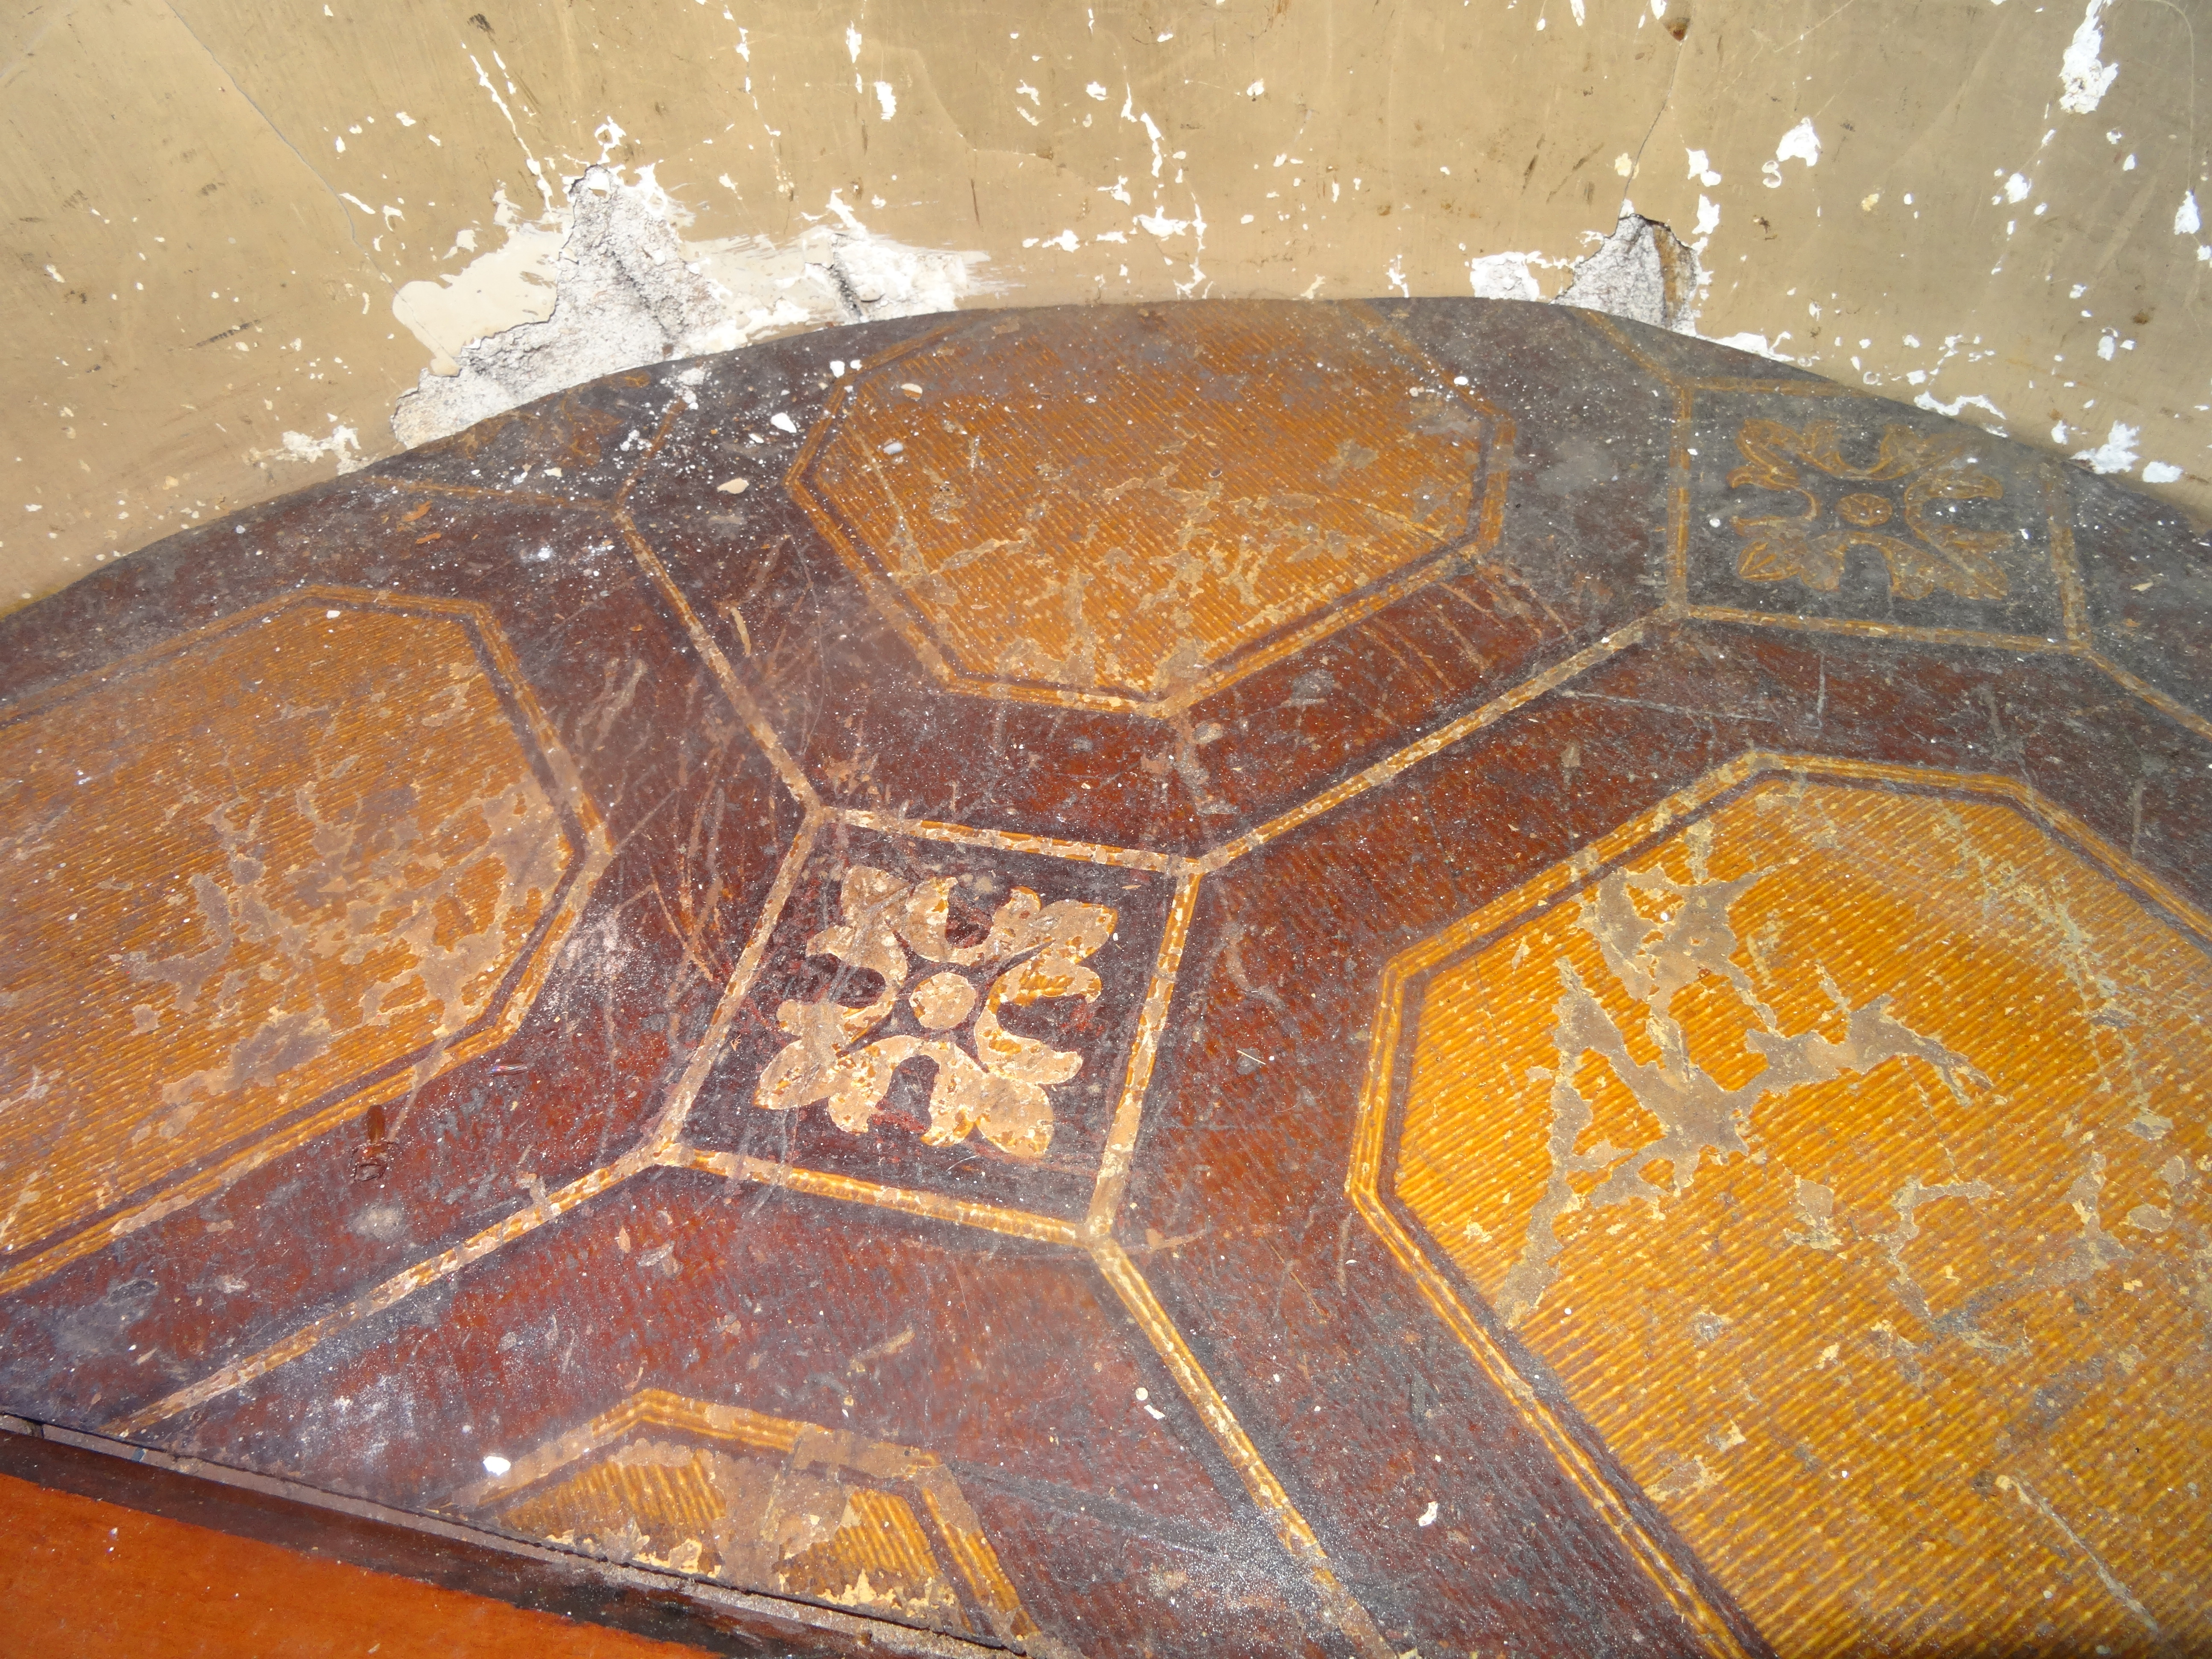 dragonflyfloor i months floors two besides artandinteriorsbyjesse cloths last floor the making spent twice moving how